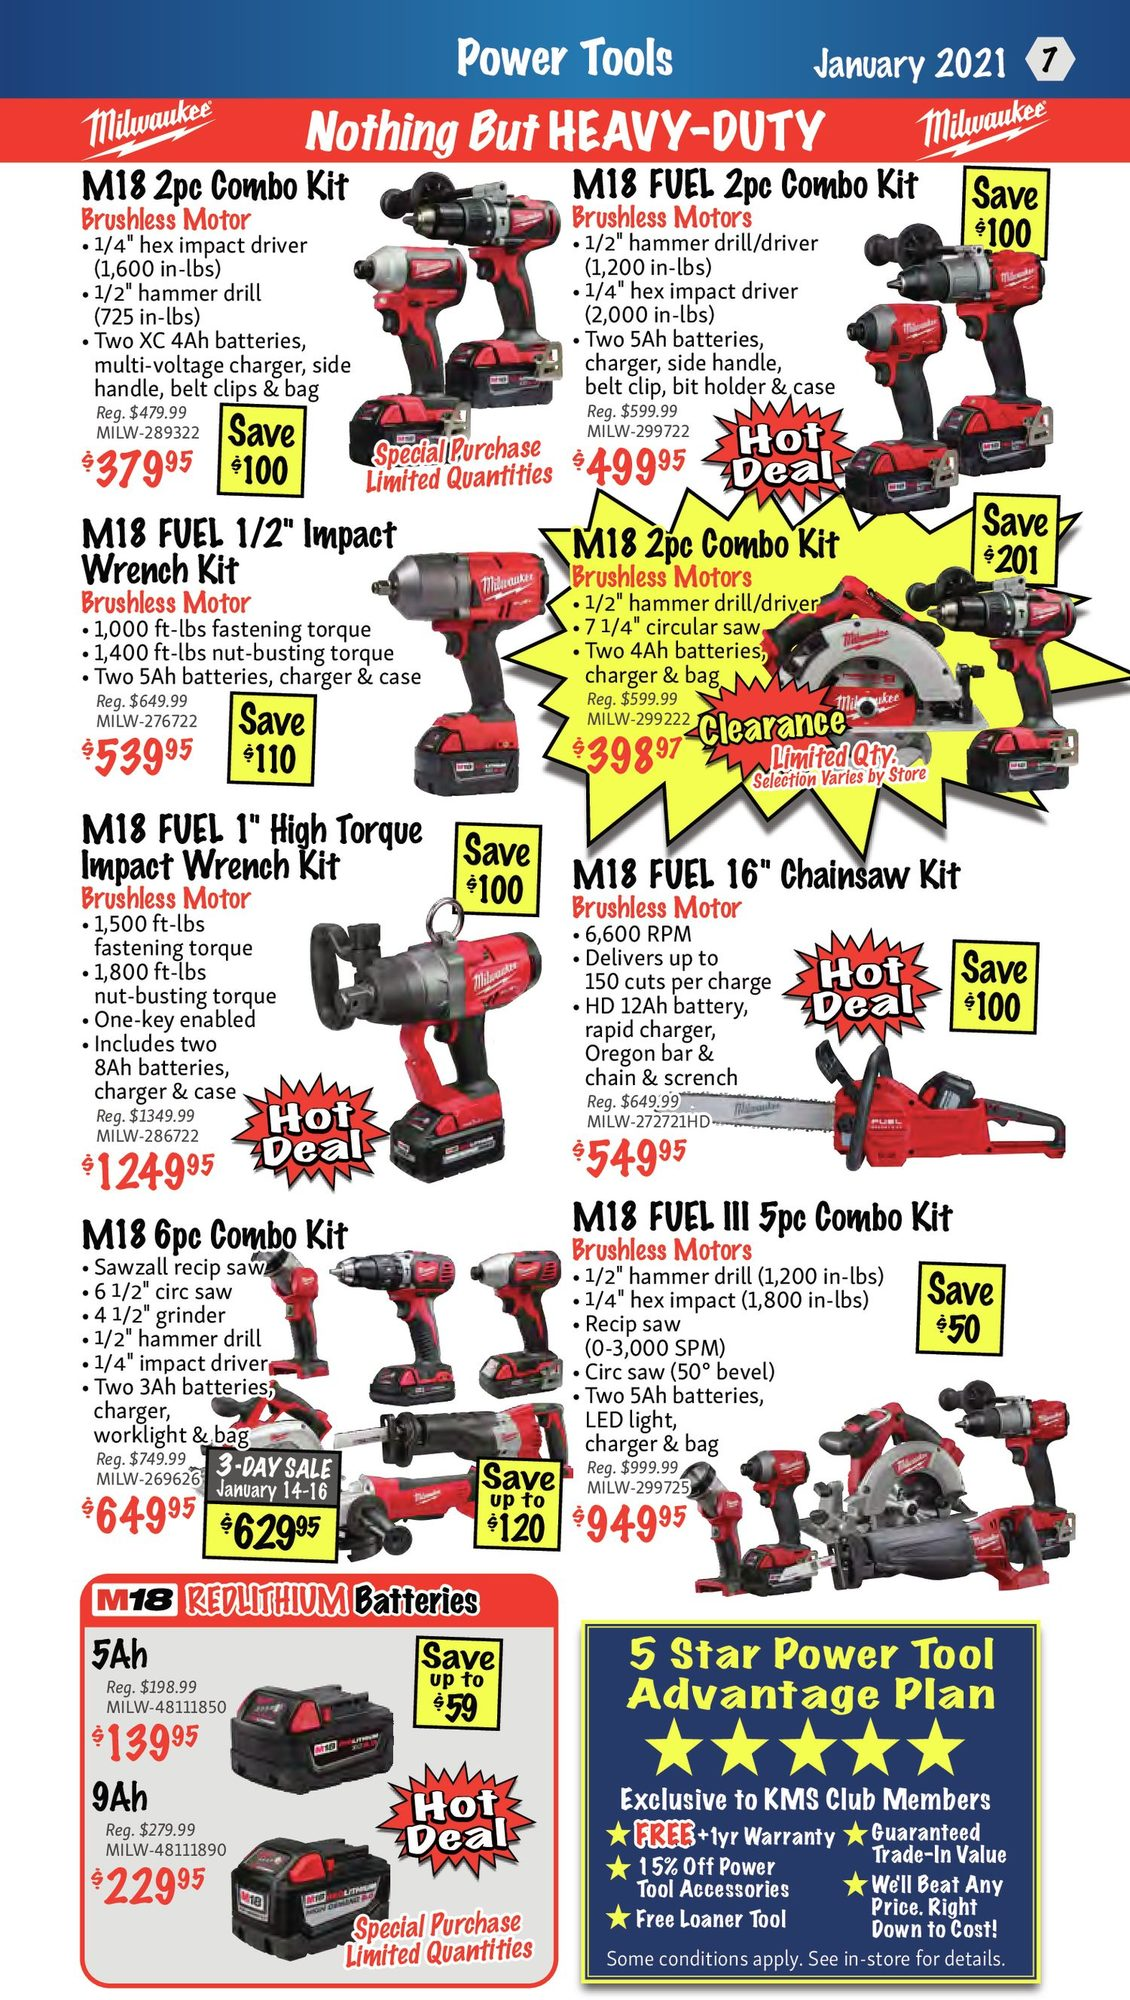 KMS Tools - Monthly Savings - Page 7